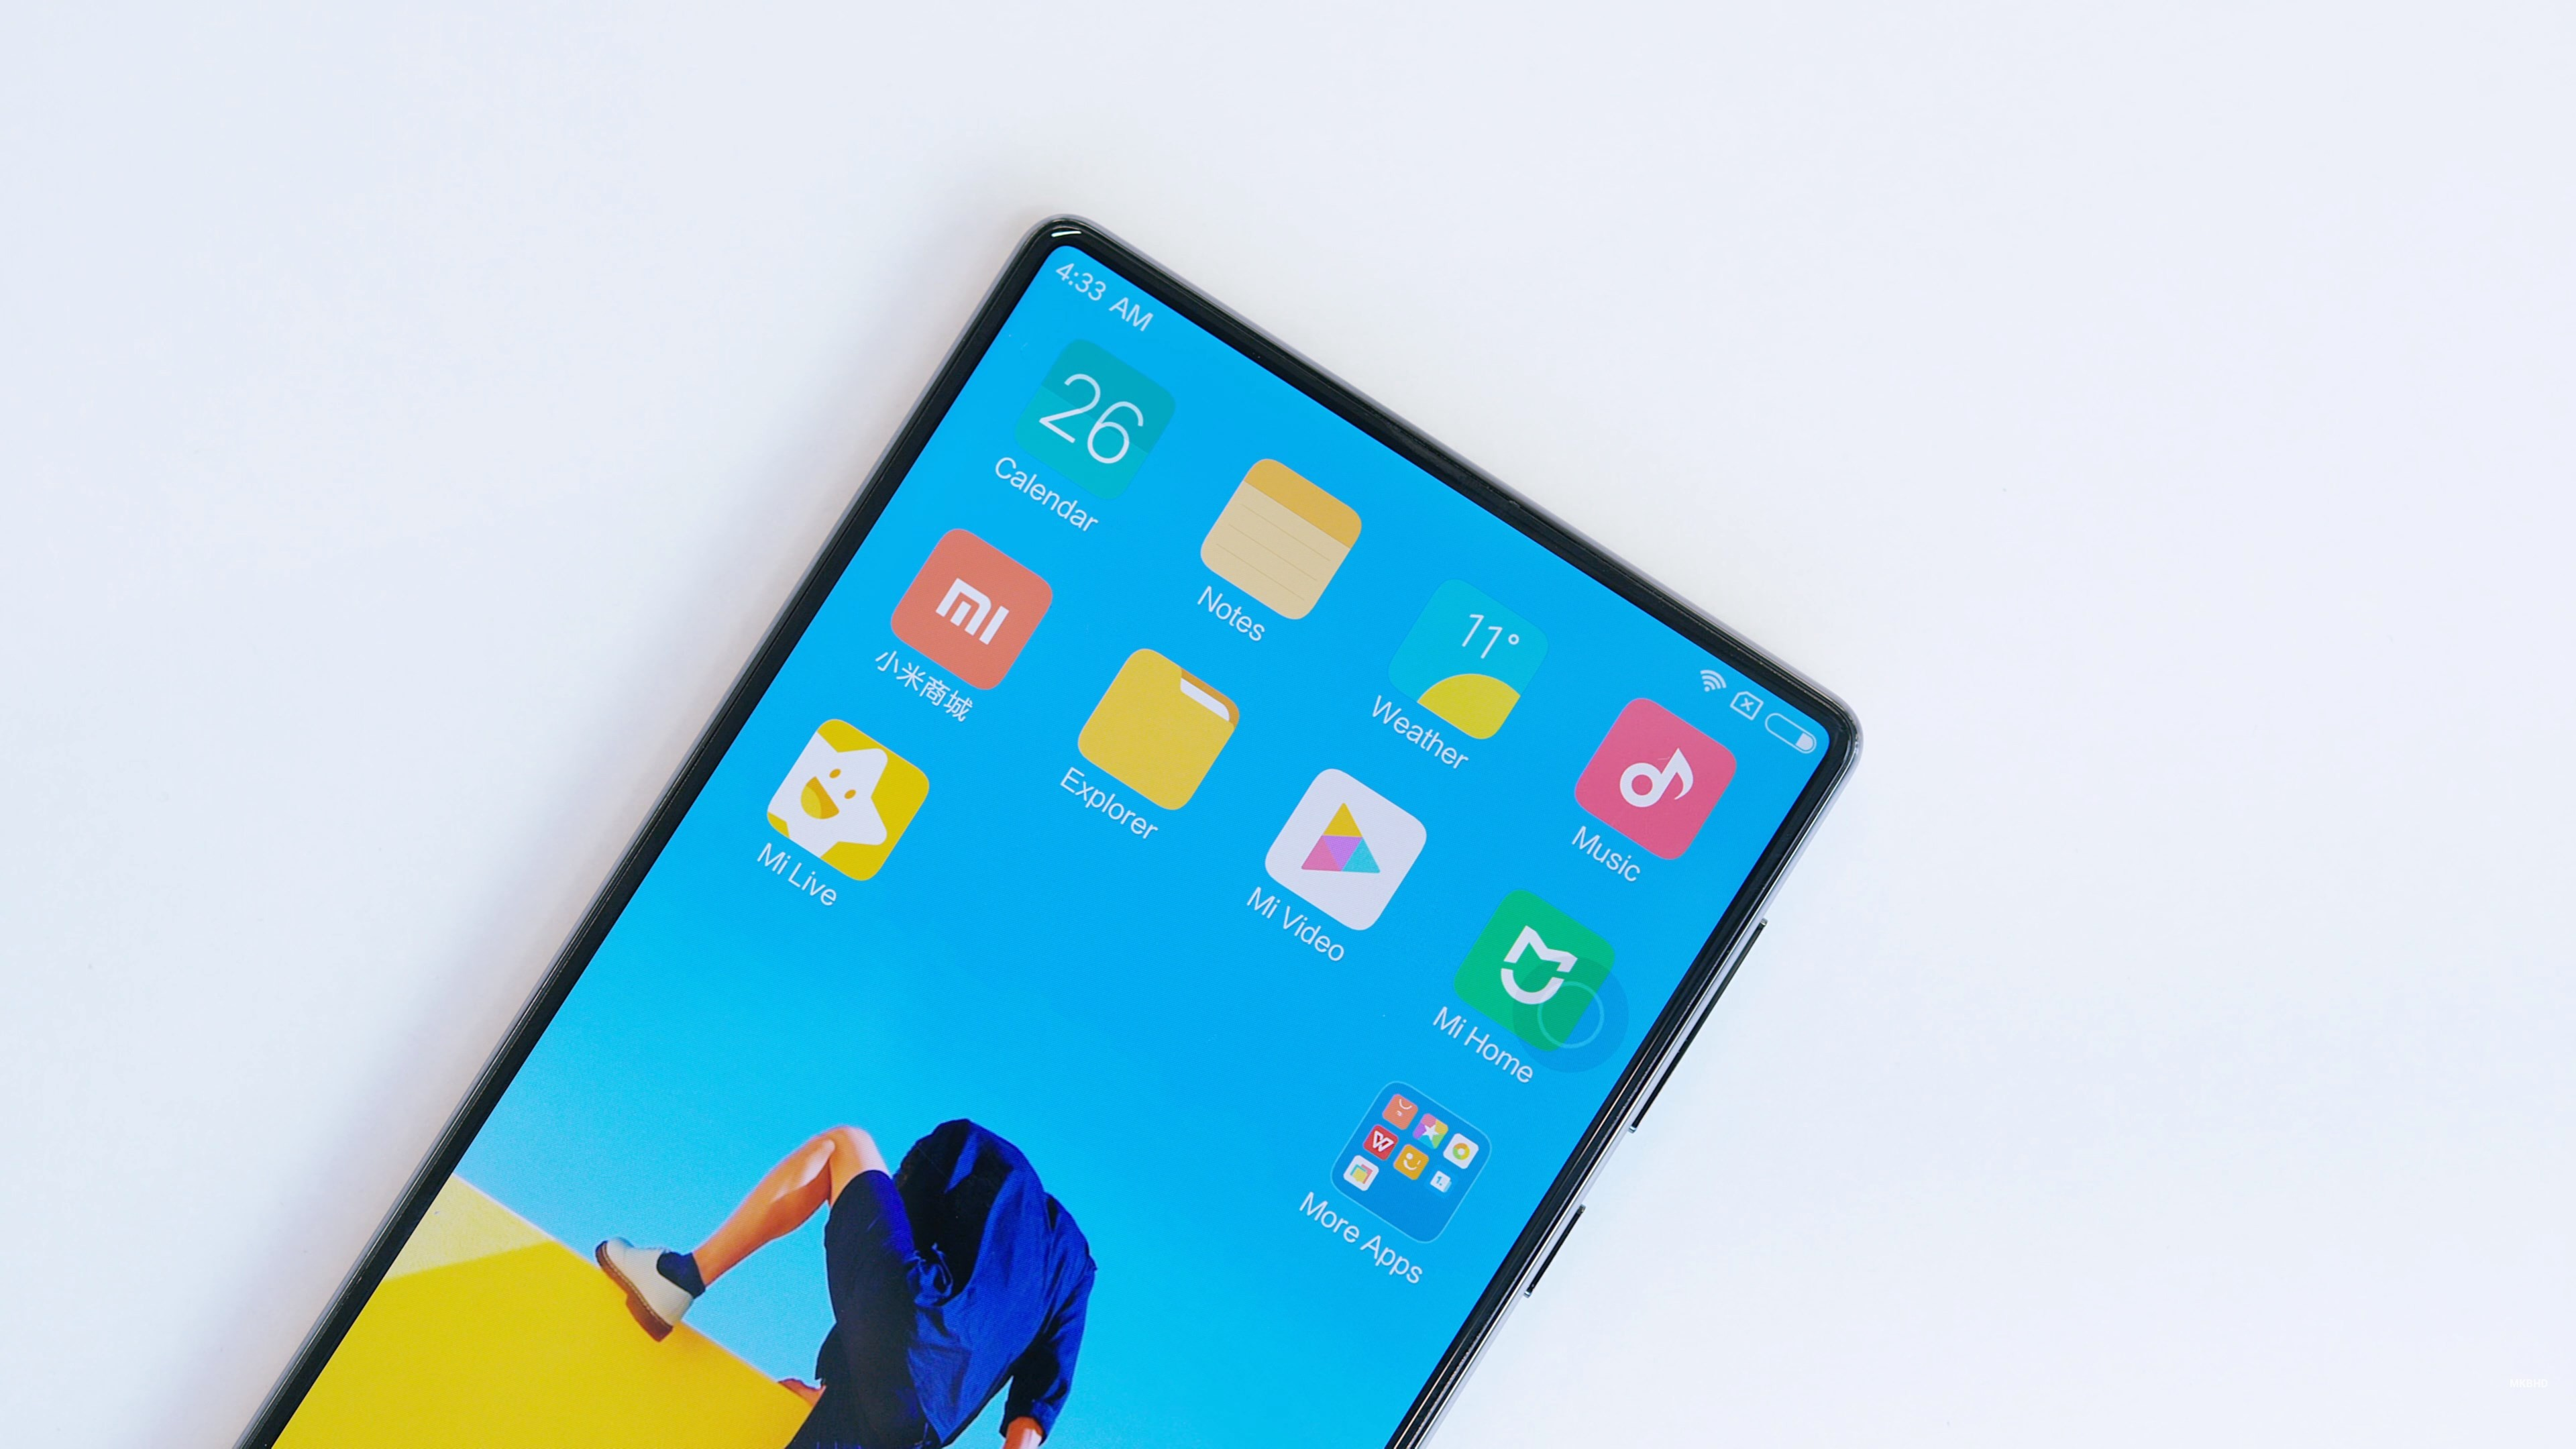 Xiaomi Mix Wallpaper: Wallpaper Xiaomi Mi MIX, Review, Best Smartphones, Hi-Tech